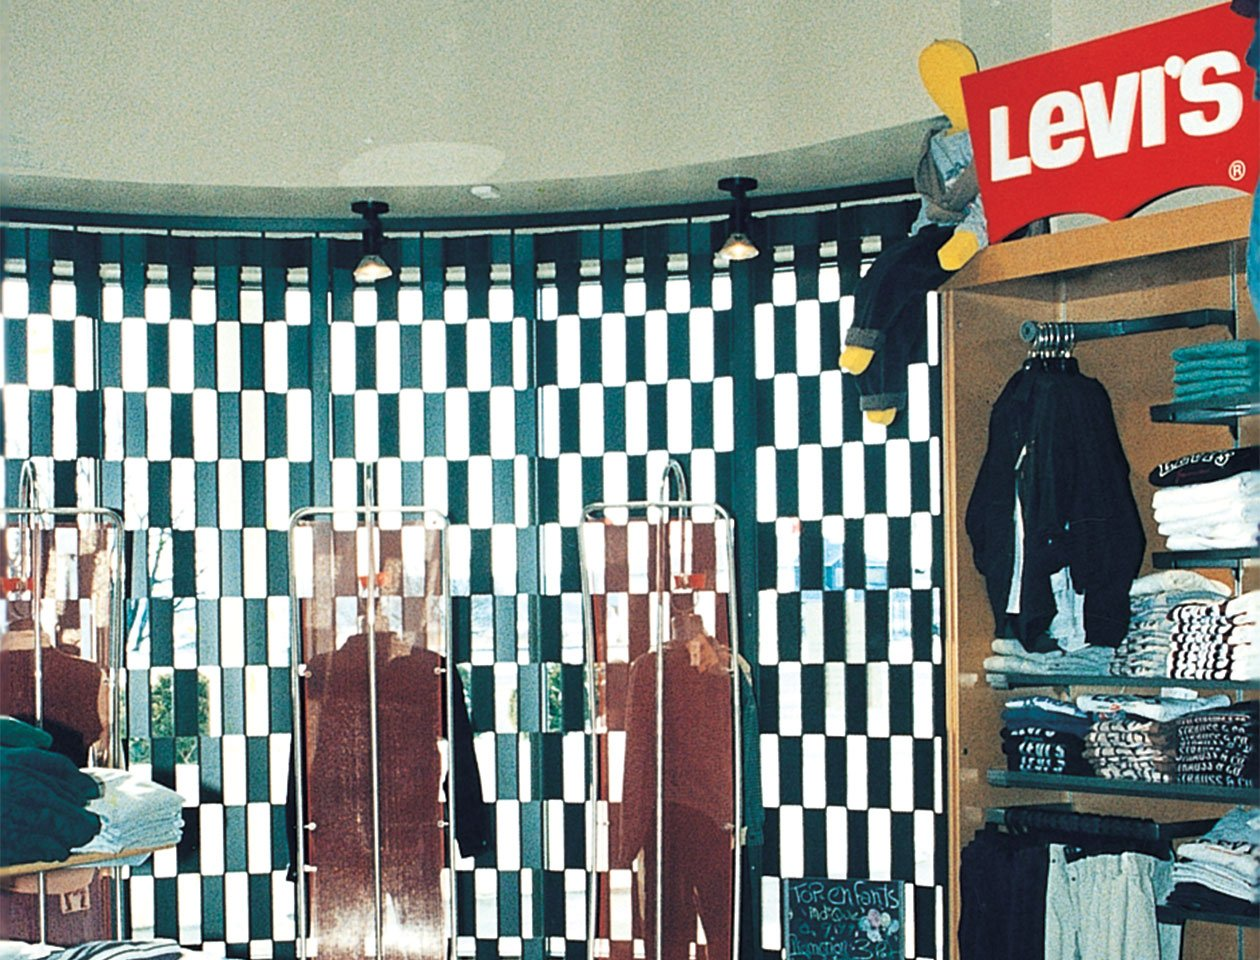 sliding folding grille used at a Levis shop